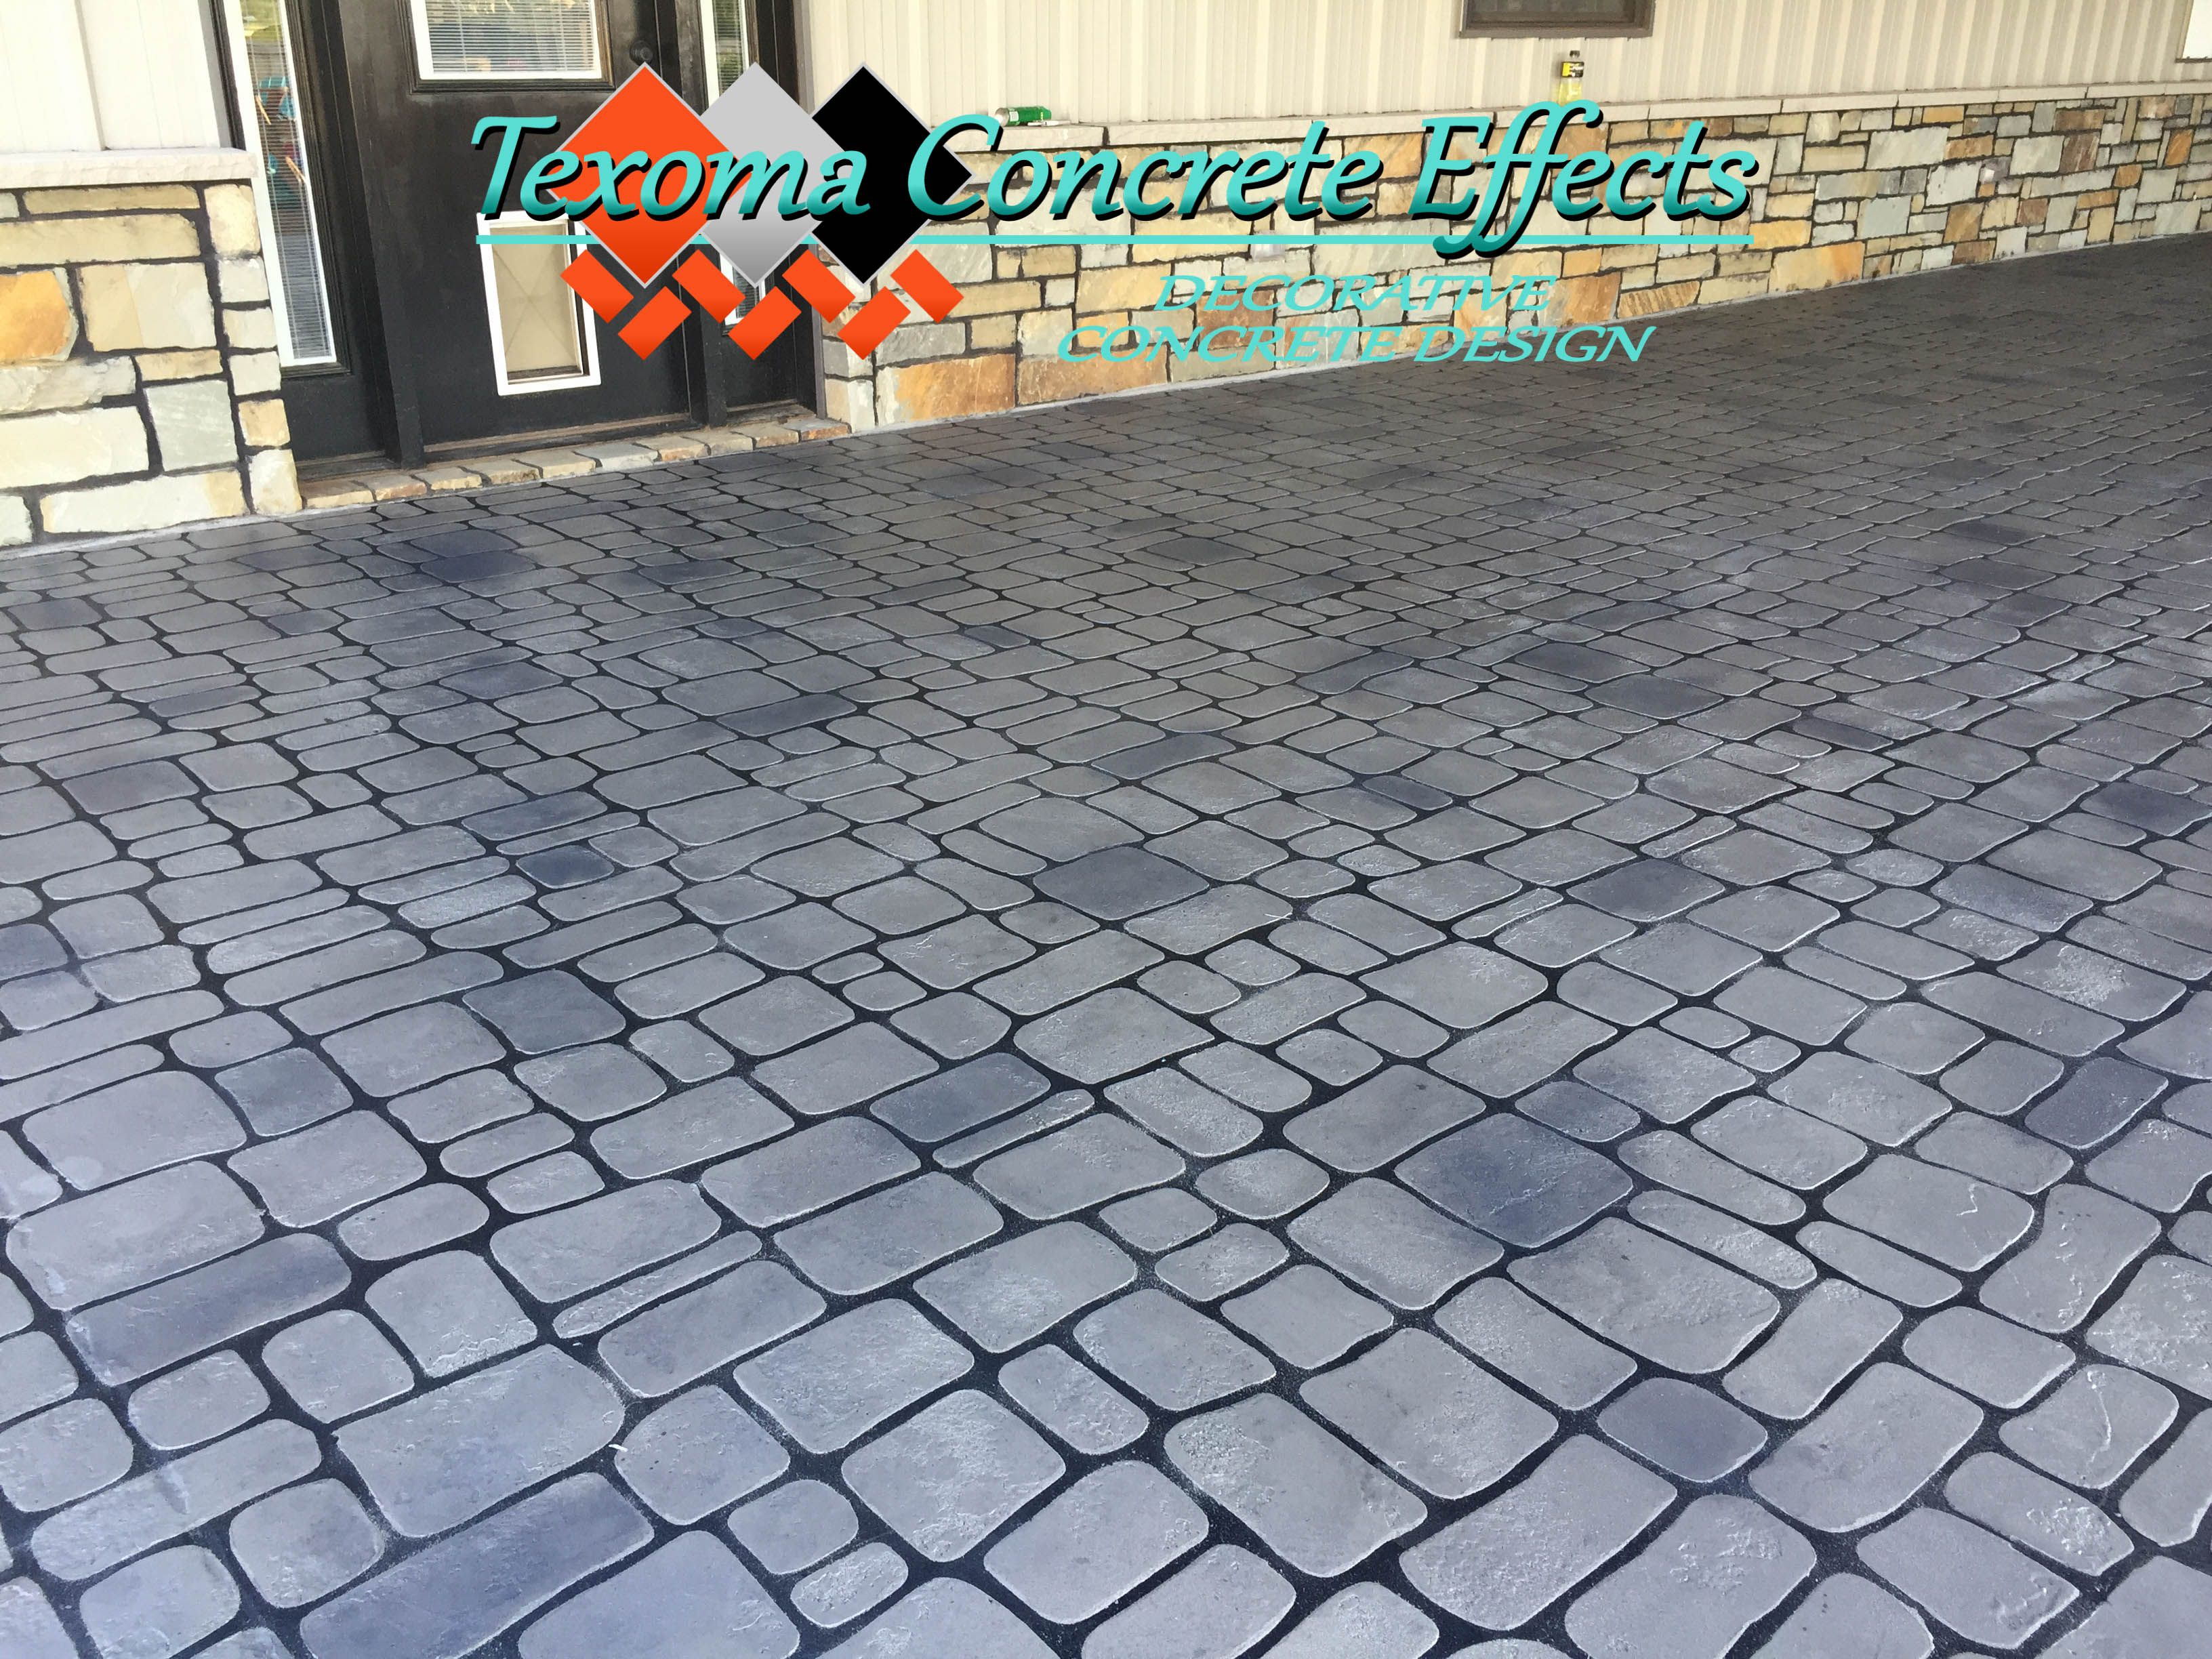 Stained Concrete Overlay Cobblestone Design By Texoma Concrete Effects Iowa Park Tx Stained Concrete Iowa Park Concrete Overlay